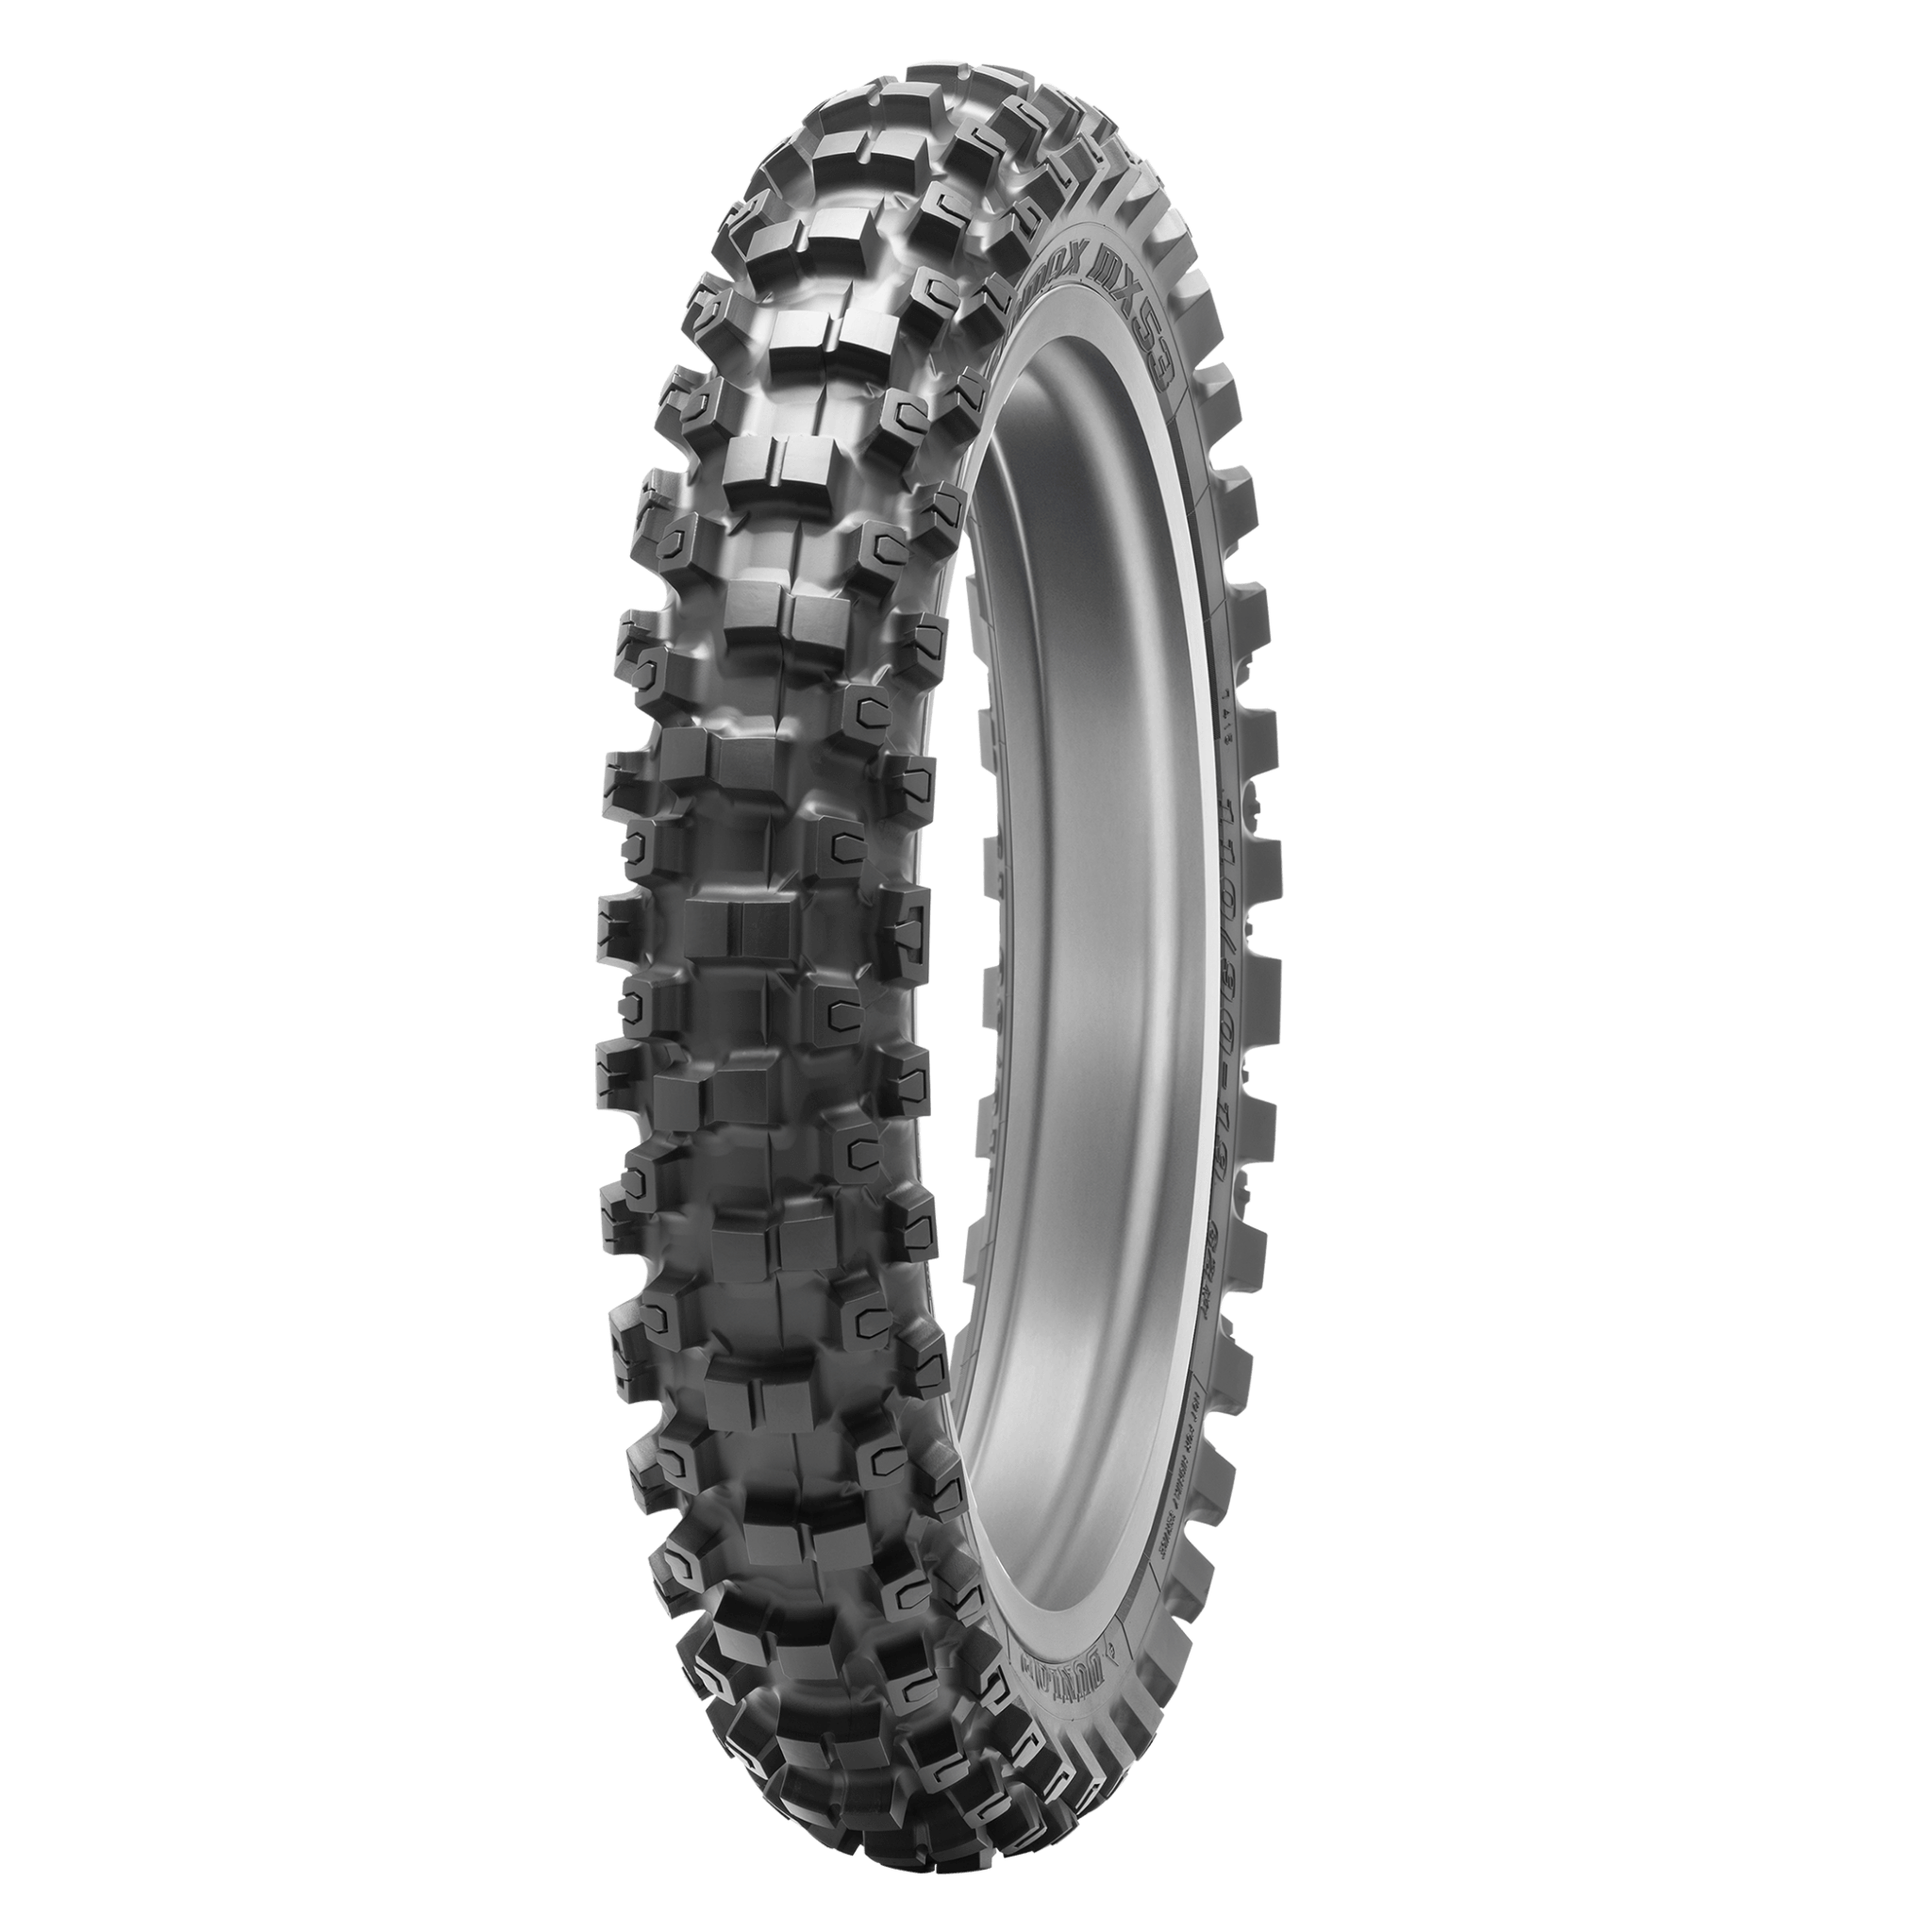 Off Road Mx Sx Tires Dunlop Motorcycle Tires